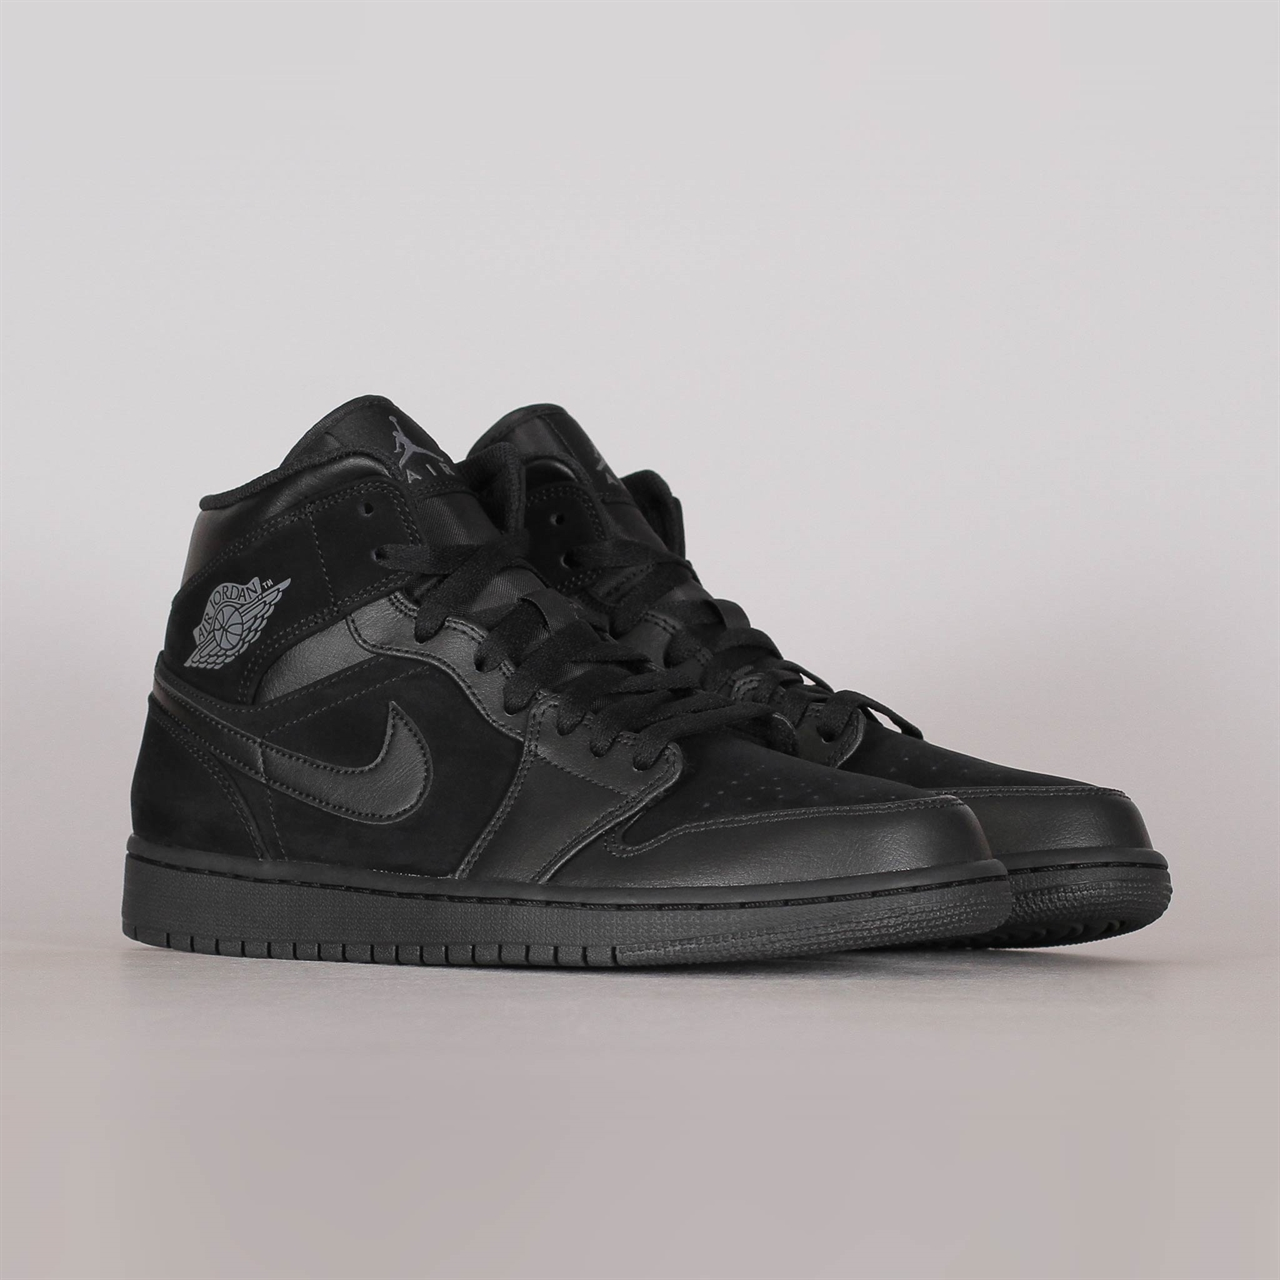 quality design 9e5ea 8d2fc Shelta - Nike Air Jordan 1 Mid (554724-050)